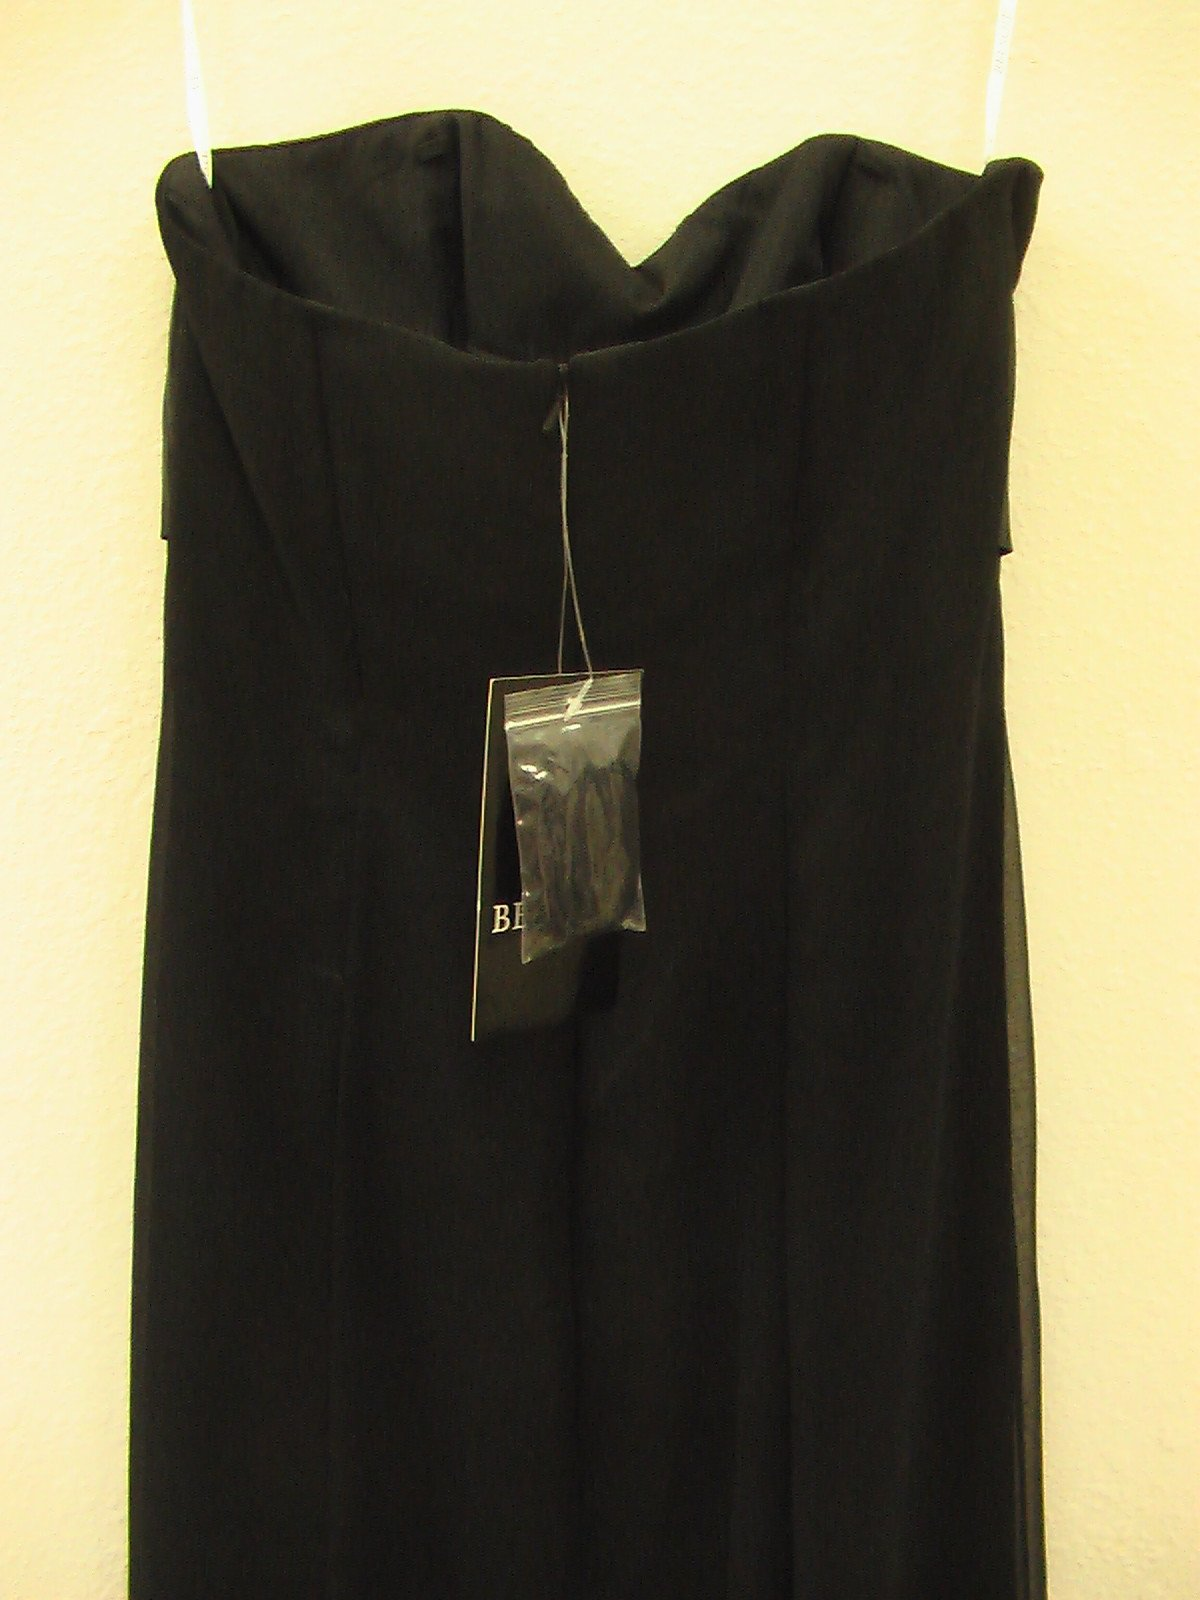 Jasmine Belsoie L1069 Black size 10 In Stock Bridesmaid Dress - Tom's Bridal